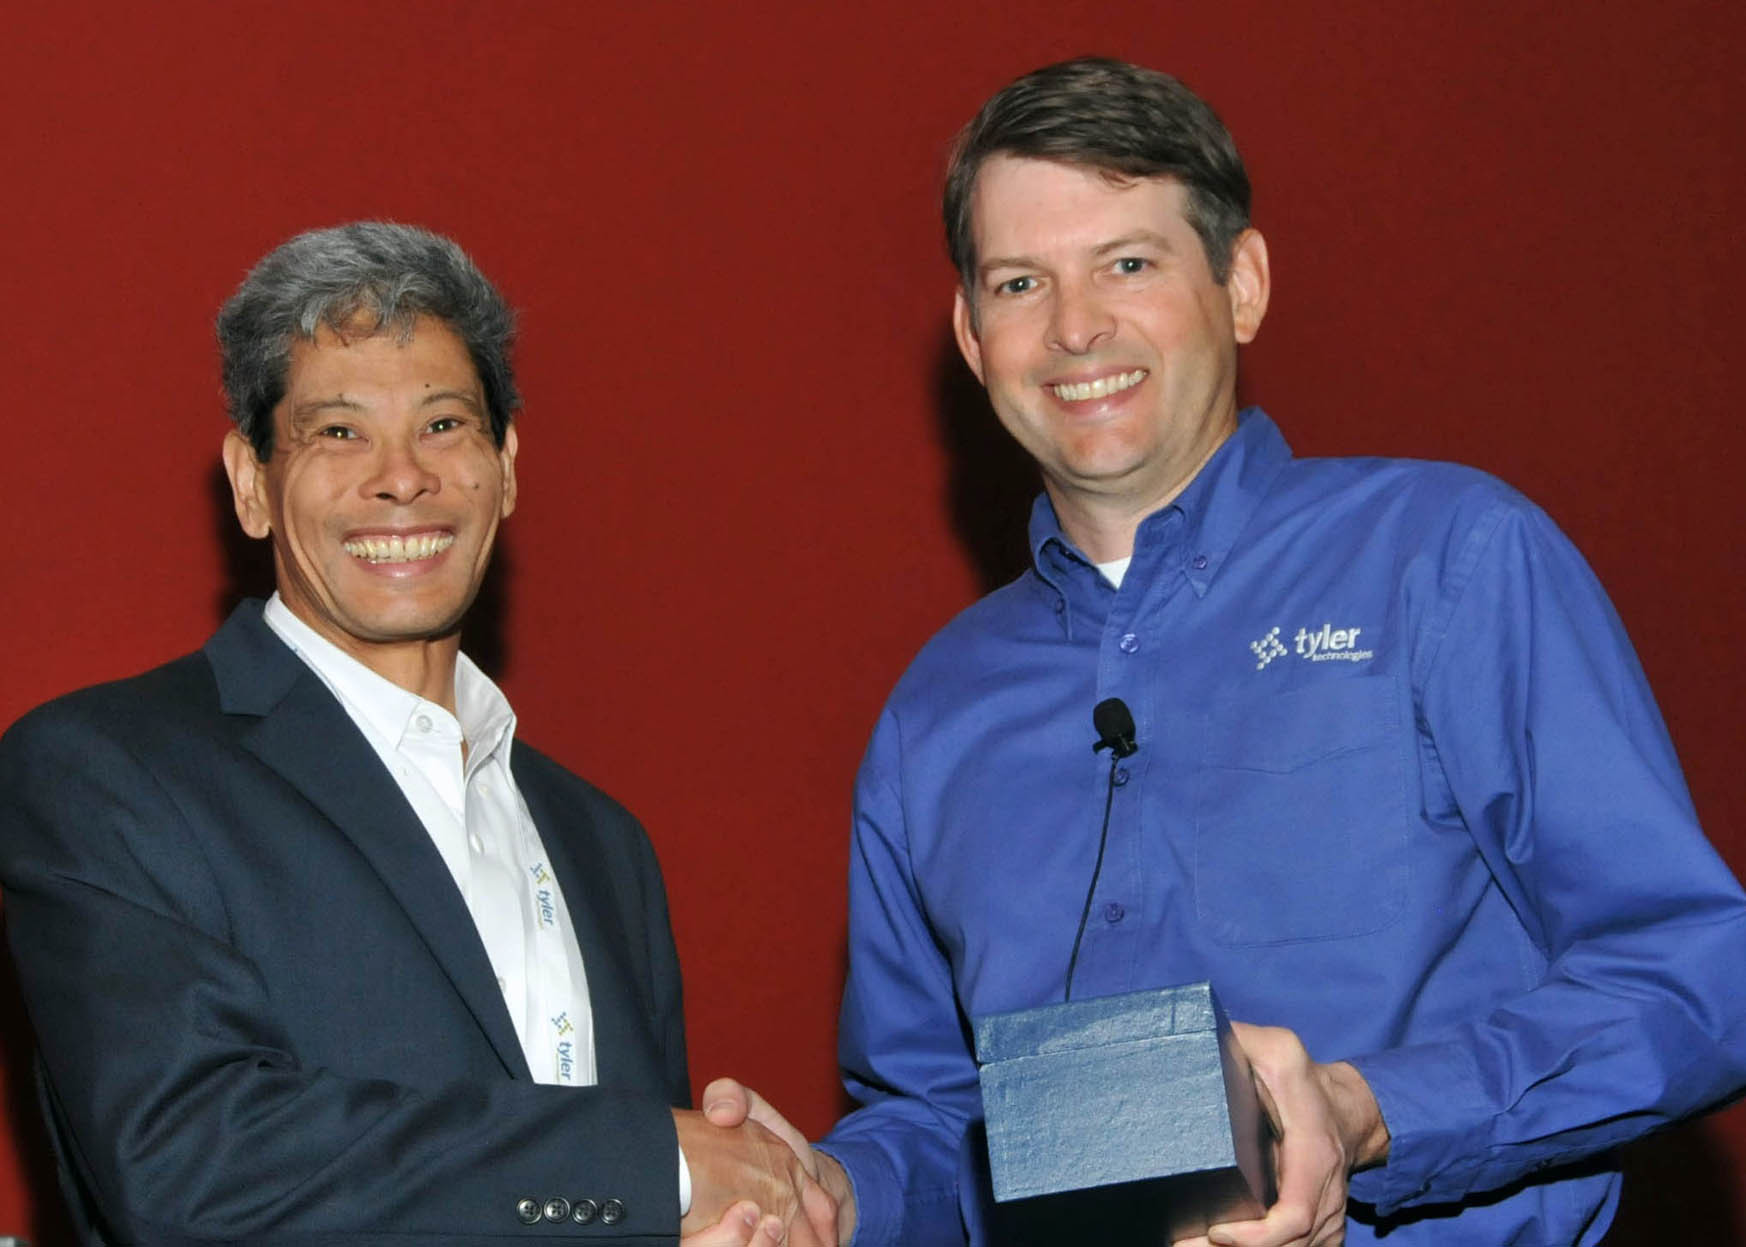 Desmond Chin, finance director at the village of Palmetto Bay, accepts a Tyler Excellence Award from Jeff Green, senior vice president at Tyler. (Photo: Business Wire)